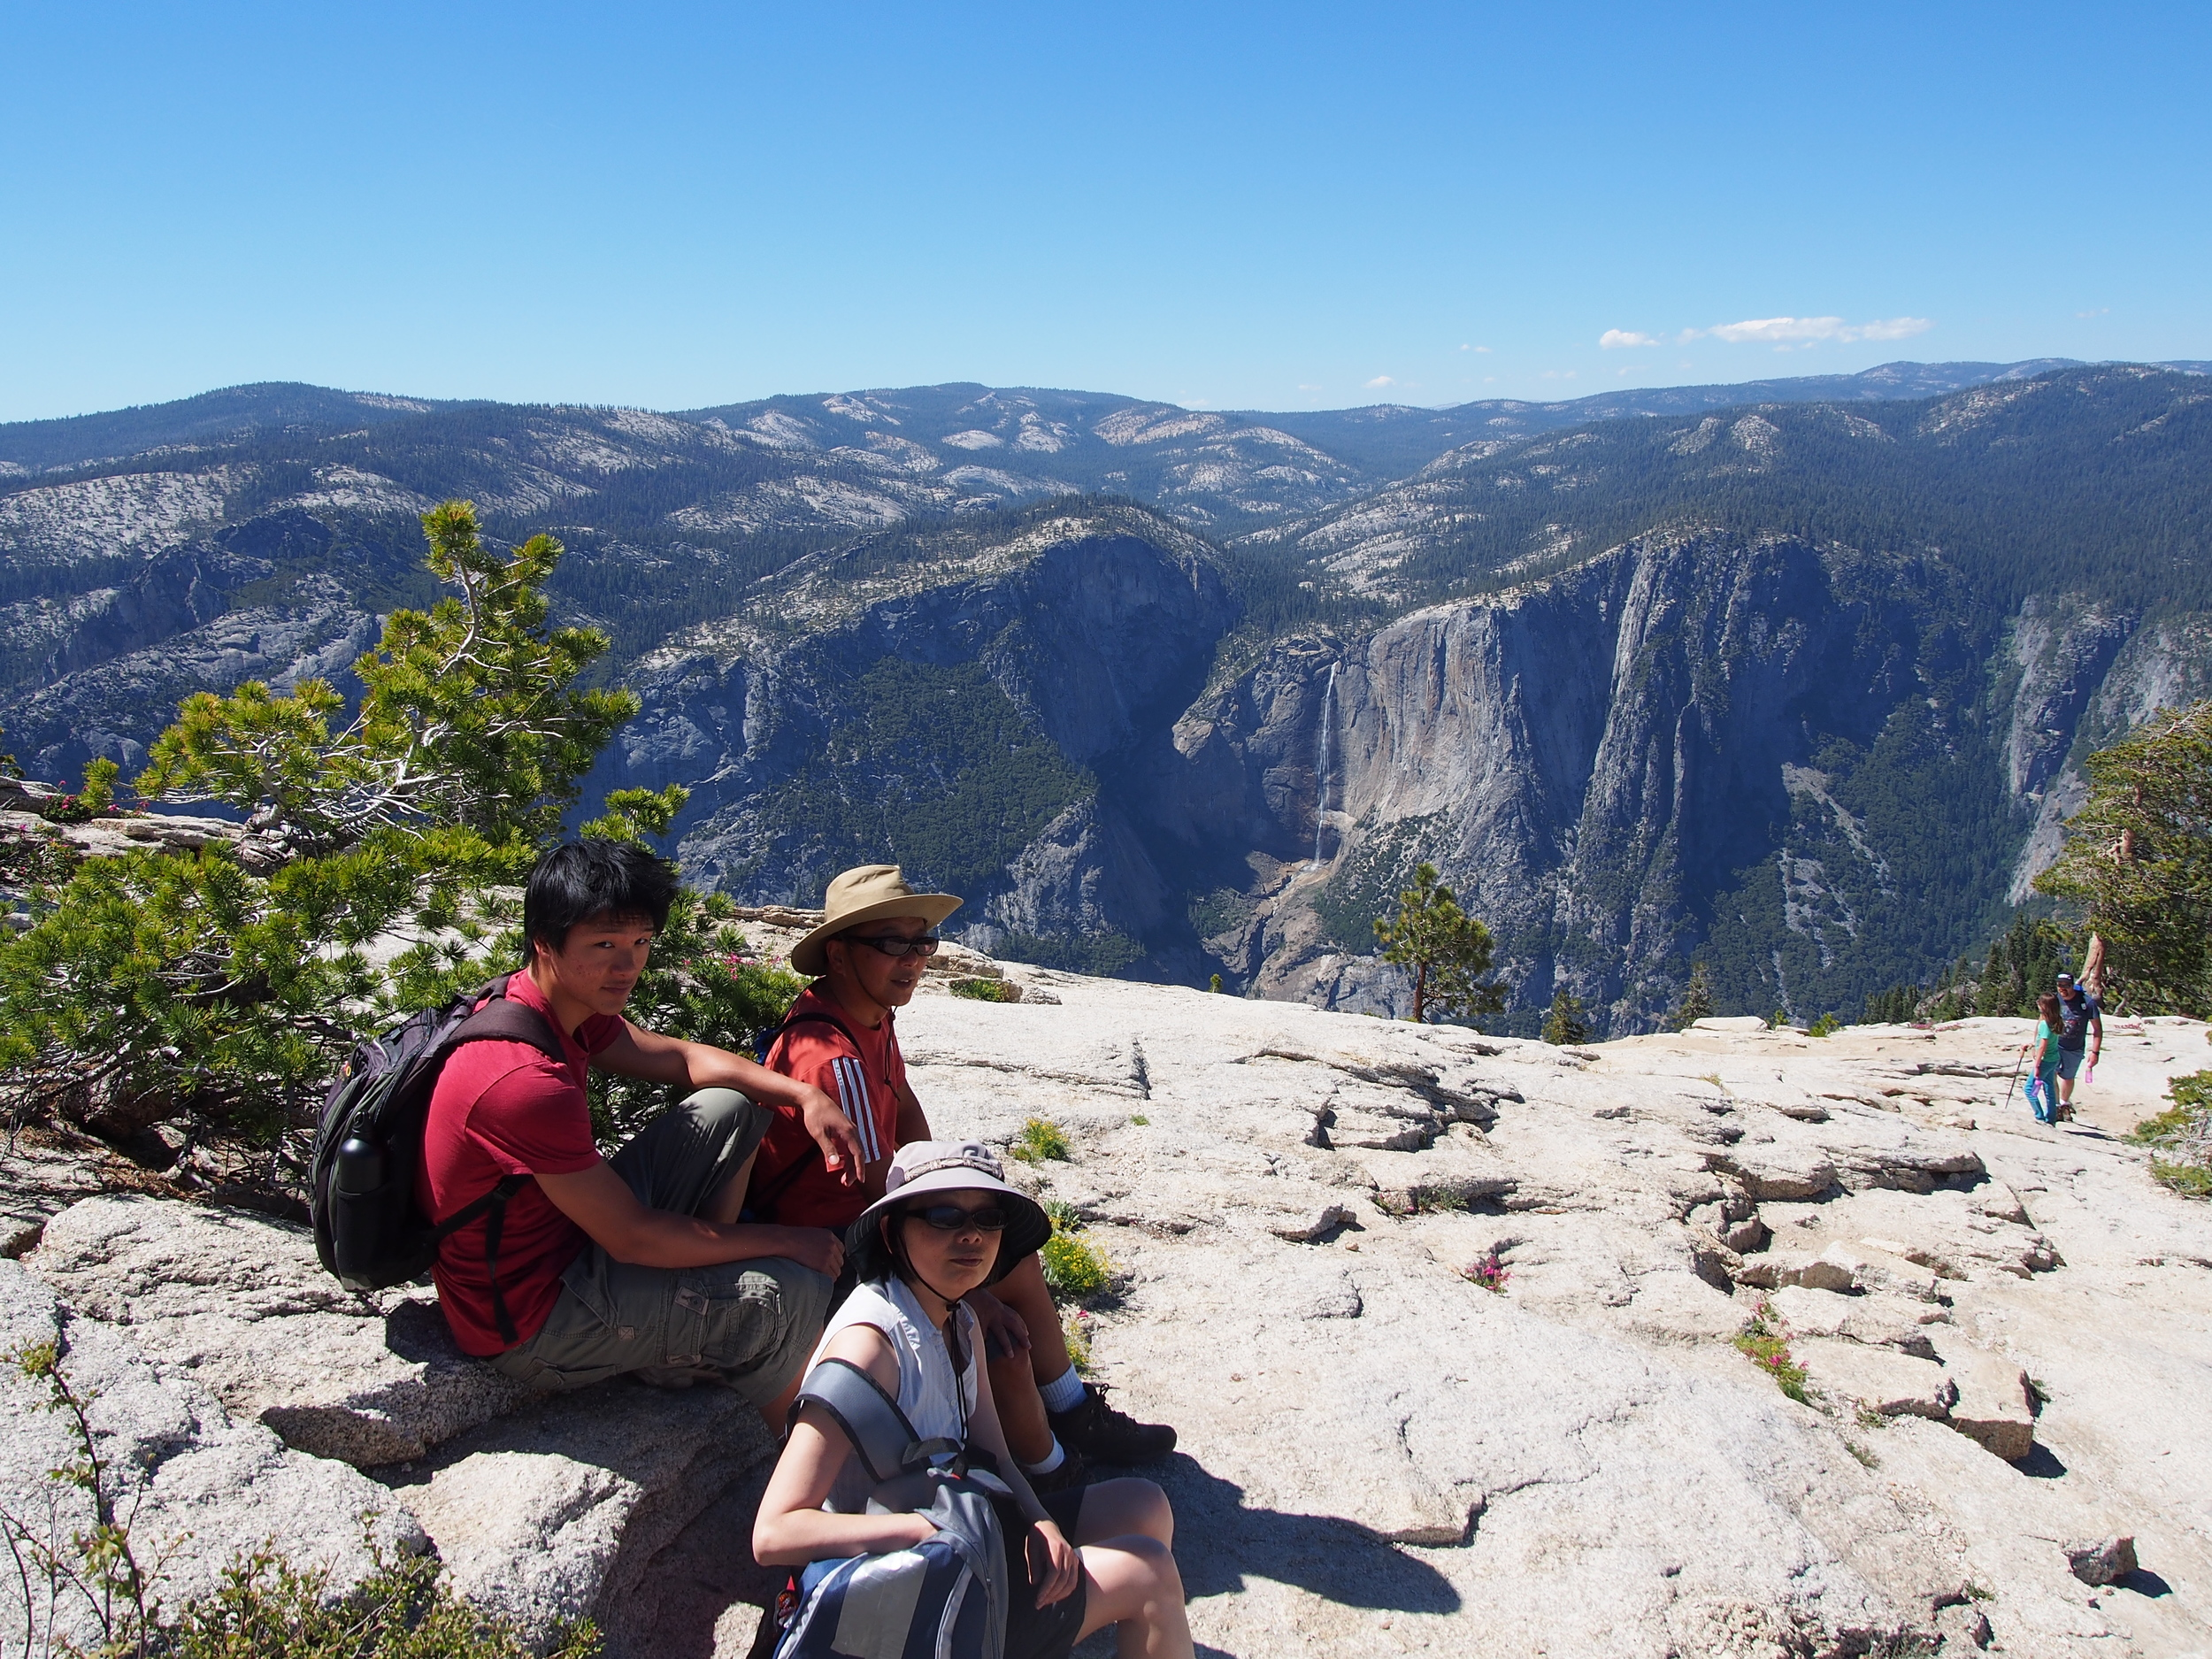 The view from the top! You get a great view of Yosemite Falls from up here